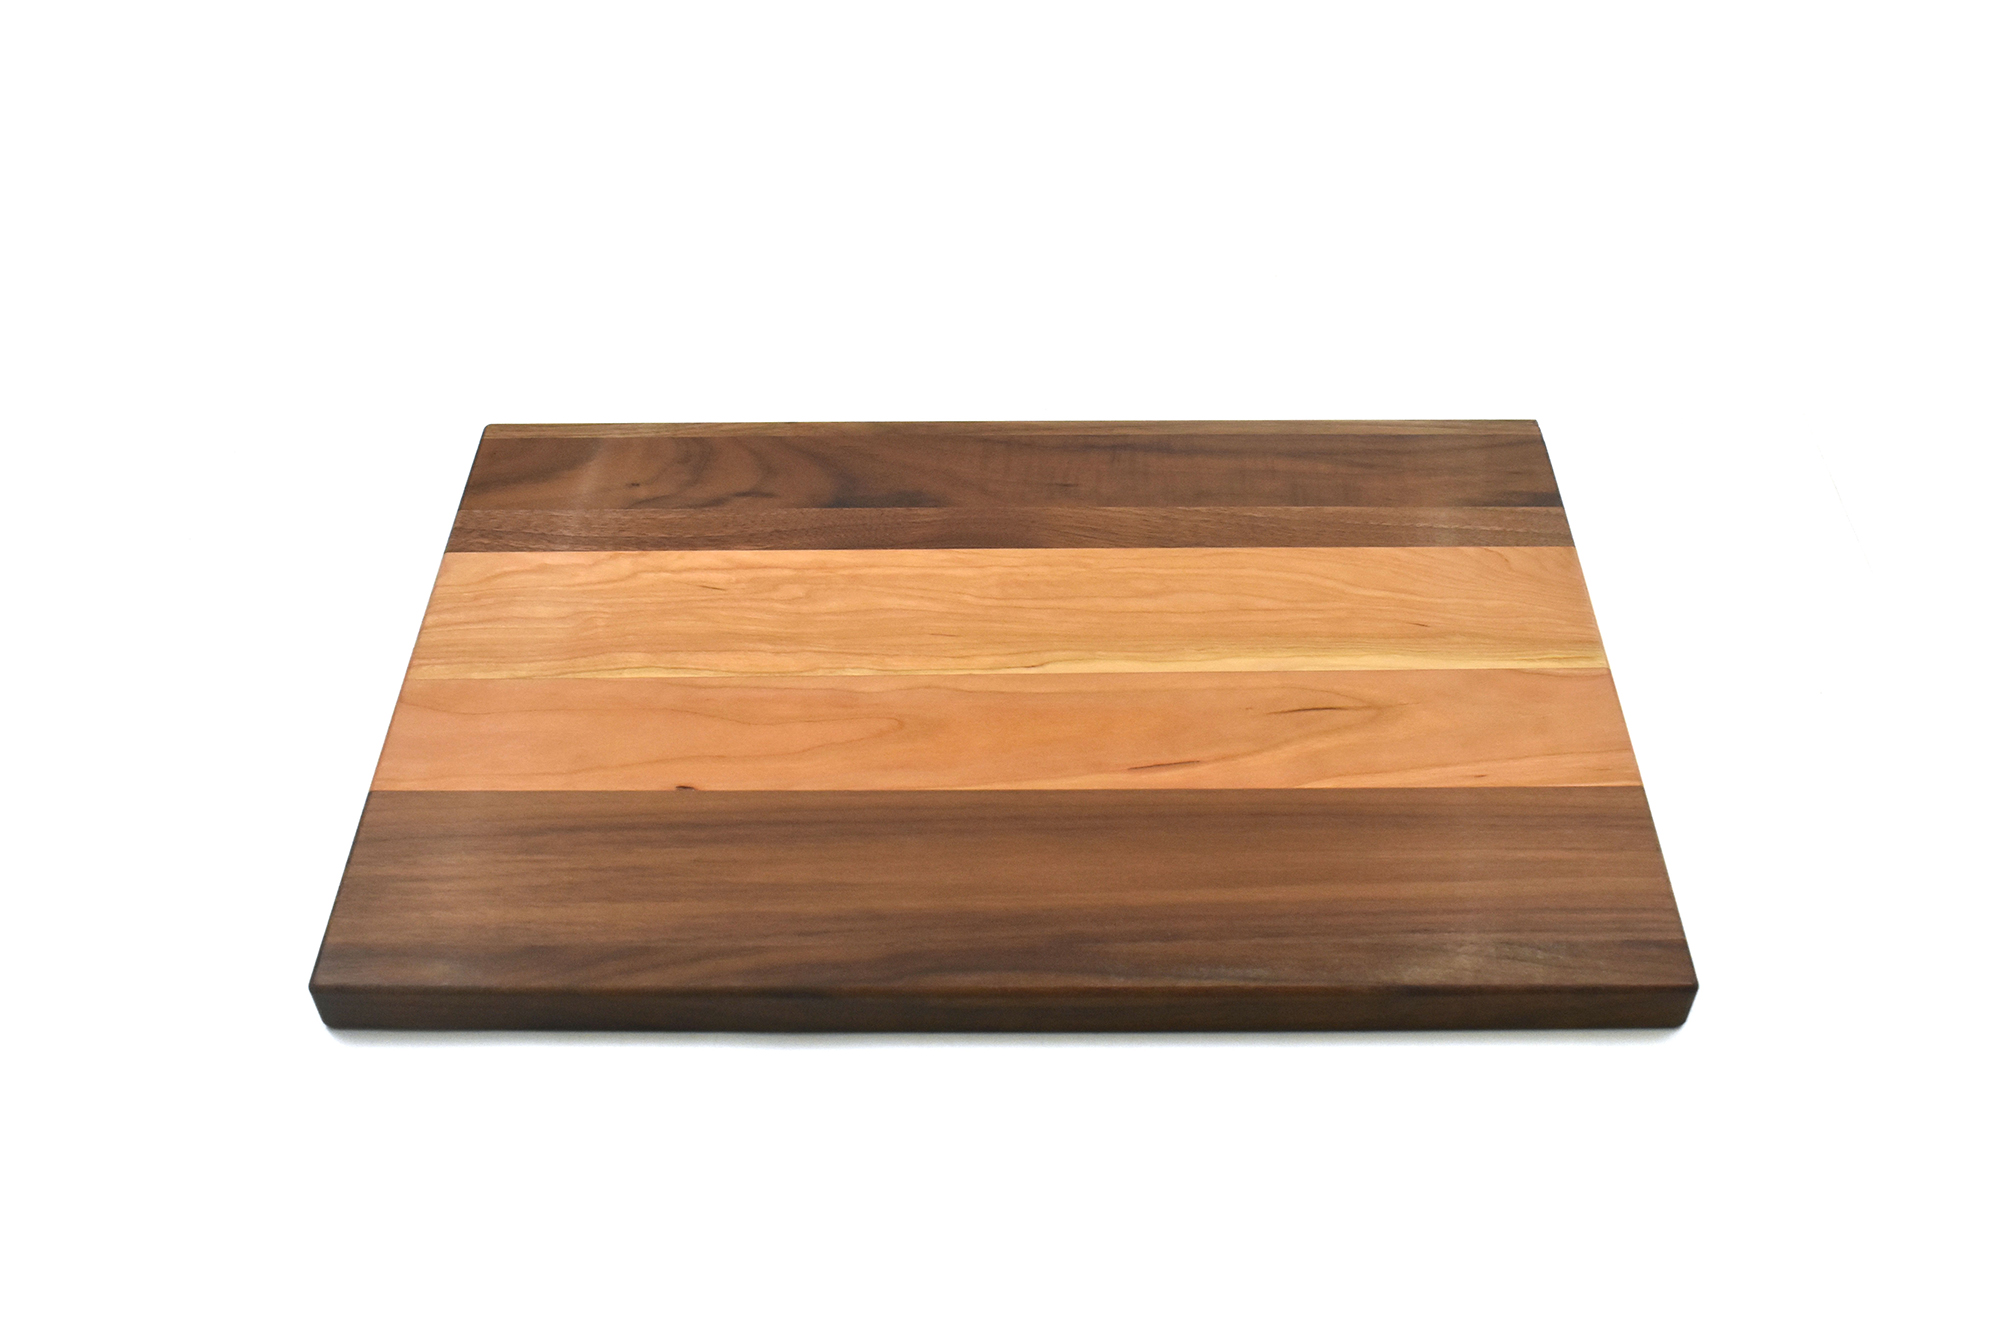 Large multi wood species cutting board with cherry in the middle